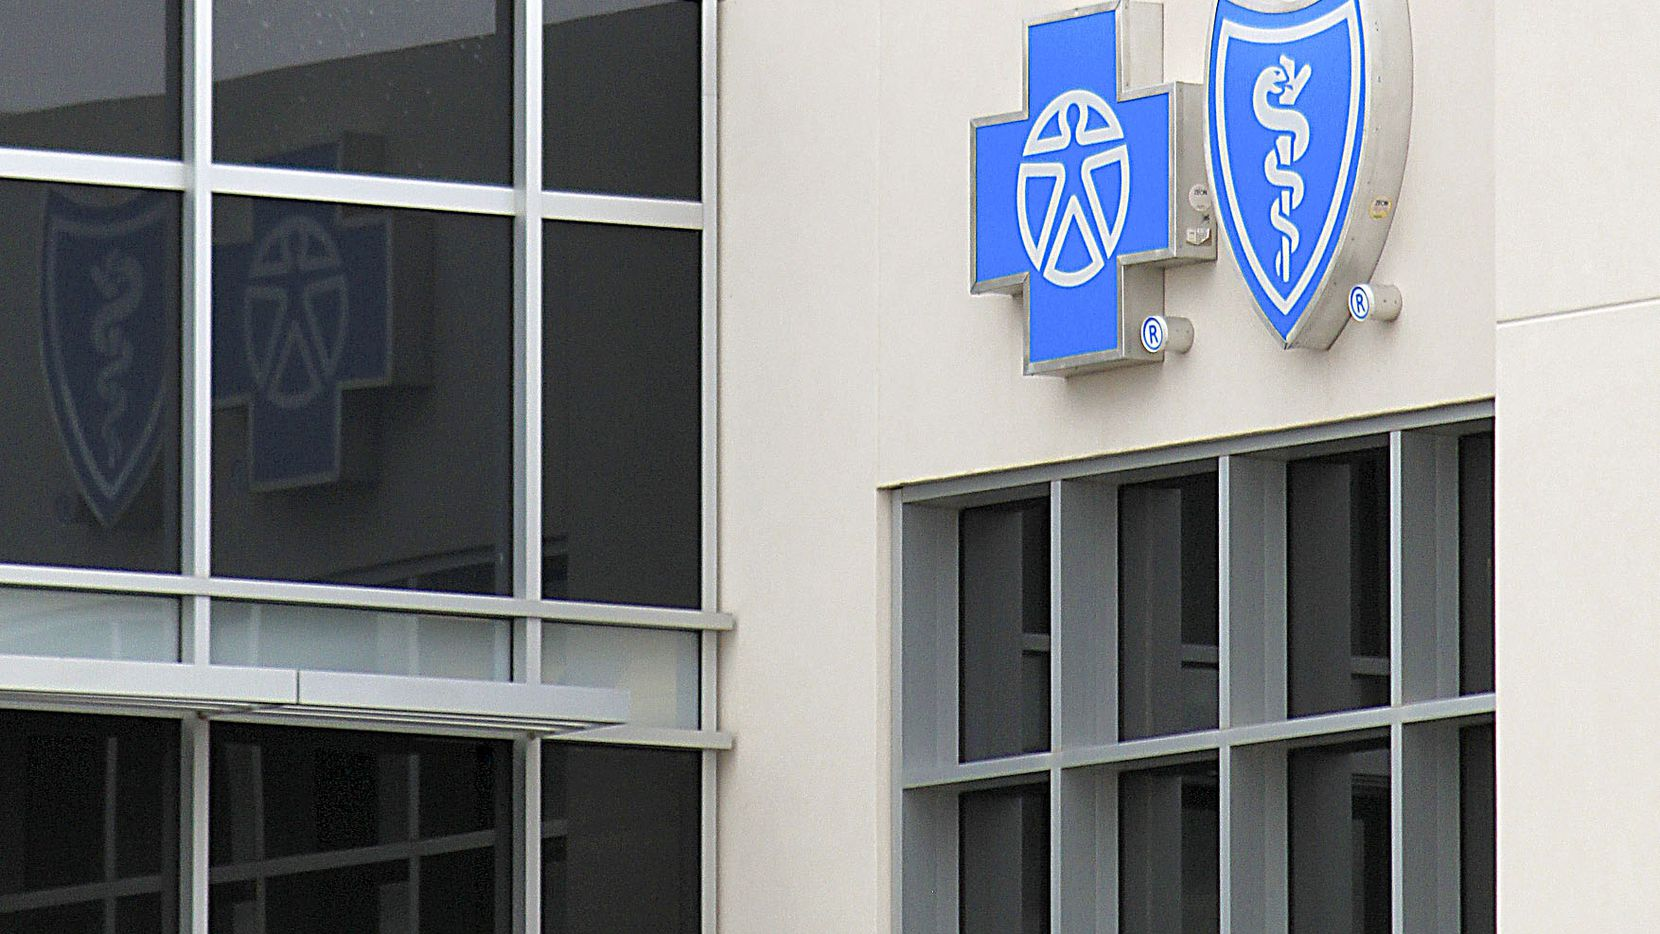 Blue Cross Blue Shield of Texas has rejected contracts that won't let the insurer steer patients to lower-cost health care providers. (AP Photo/Susan Montoya Bryan) ORG XMIT: RPSB103